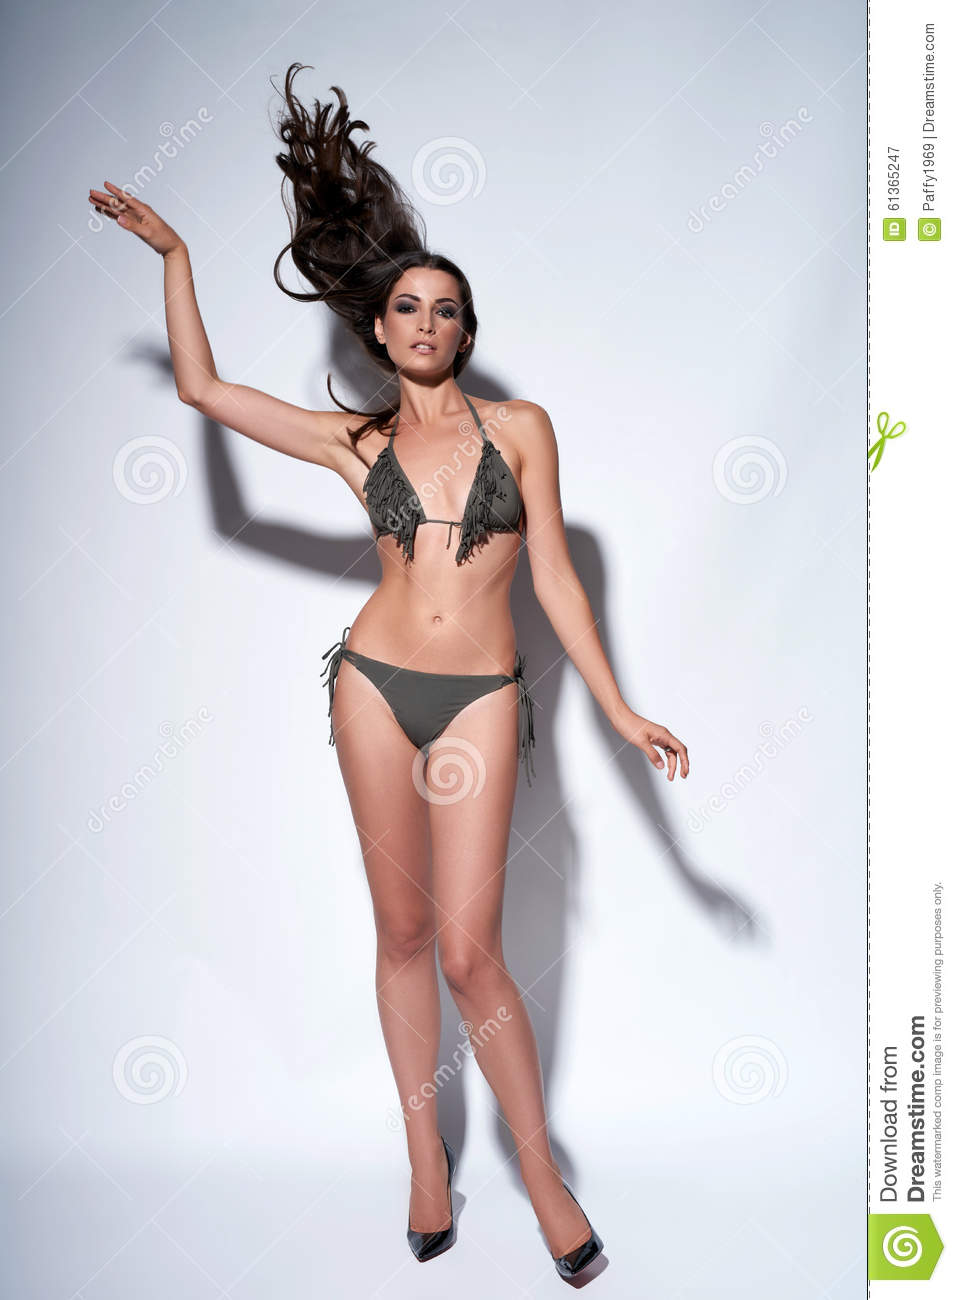 Fashion Model Posing In Bikini Stock Image